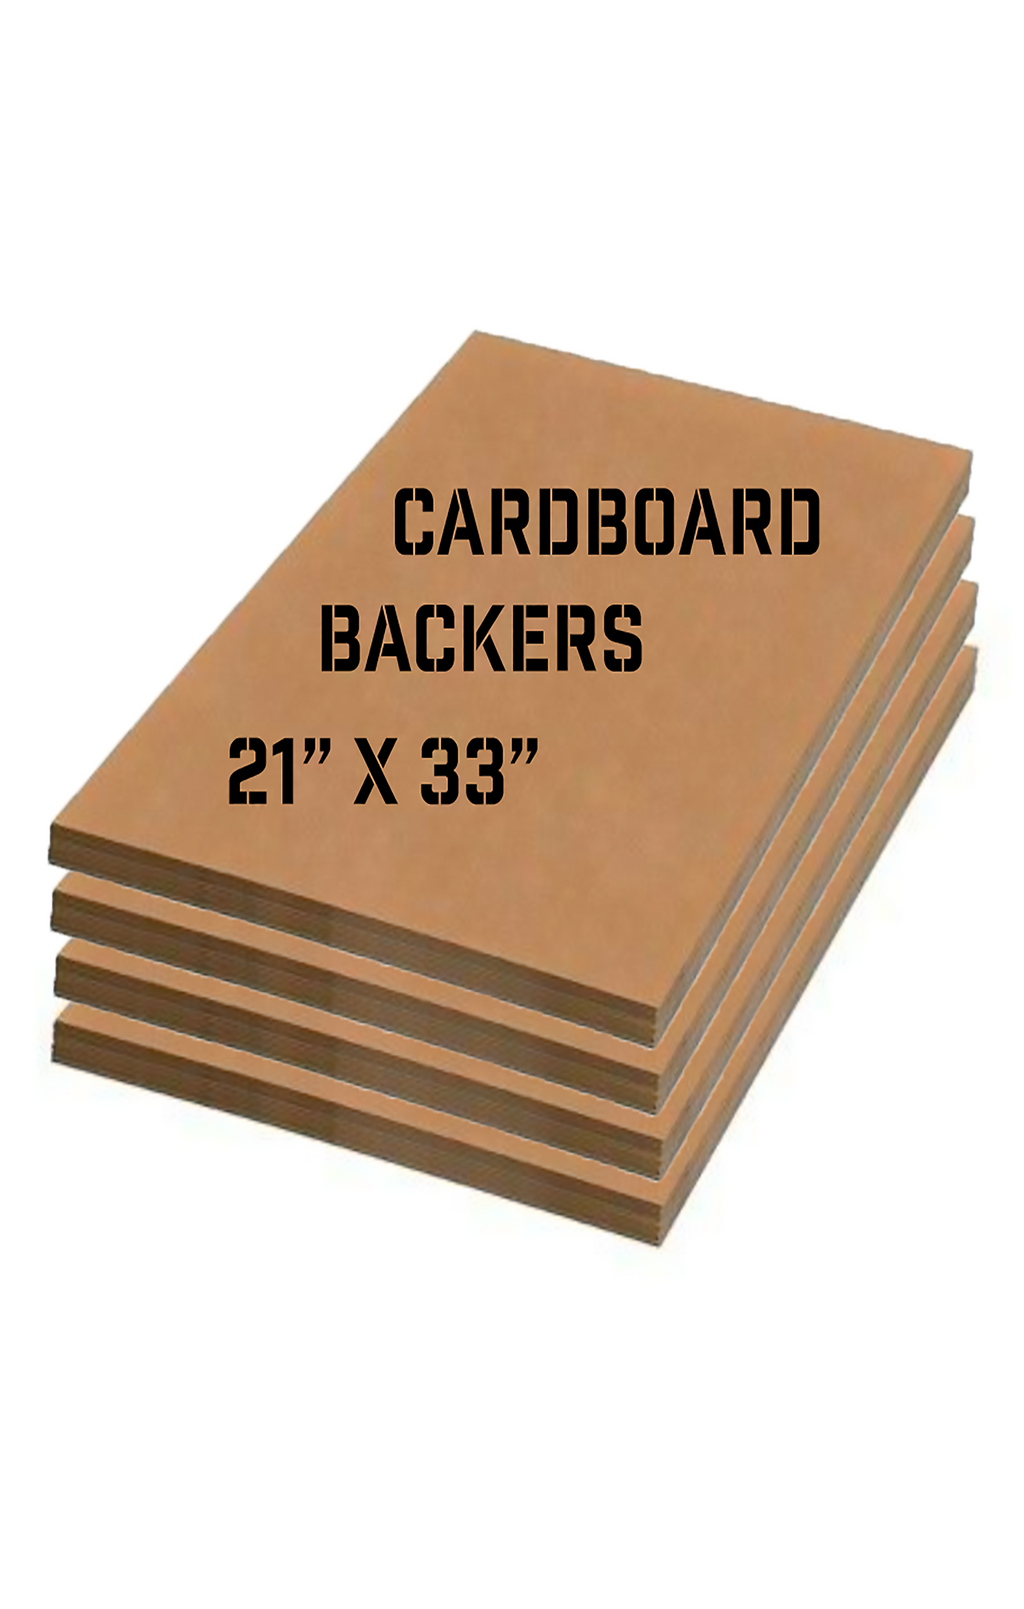 (10) Cardboard Backers 21X33 inches